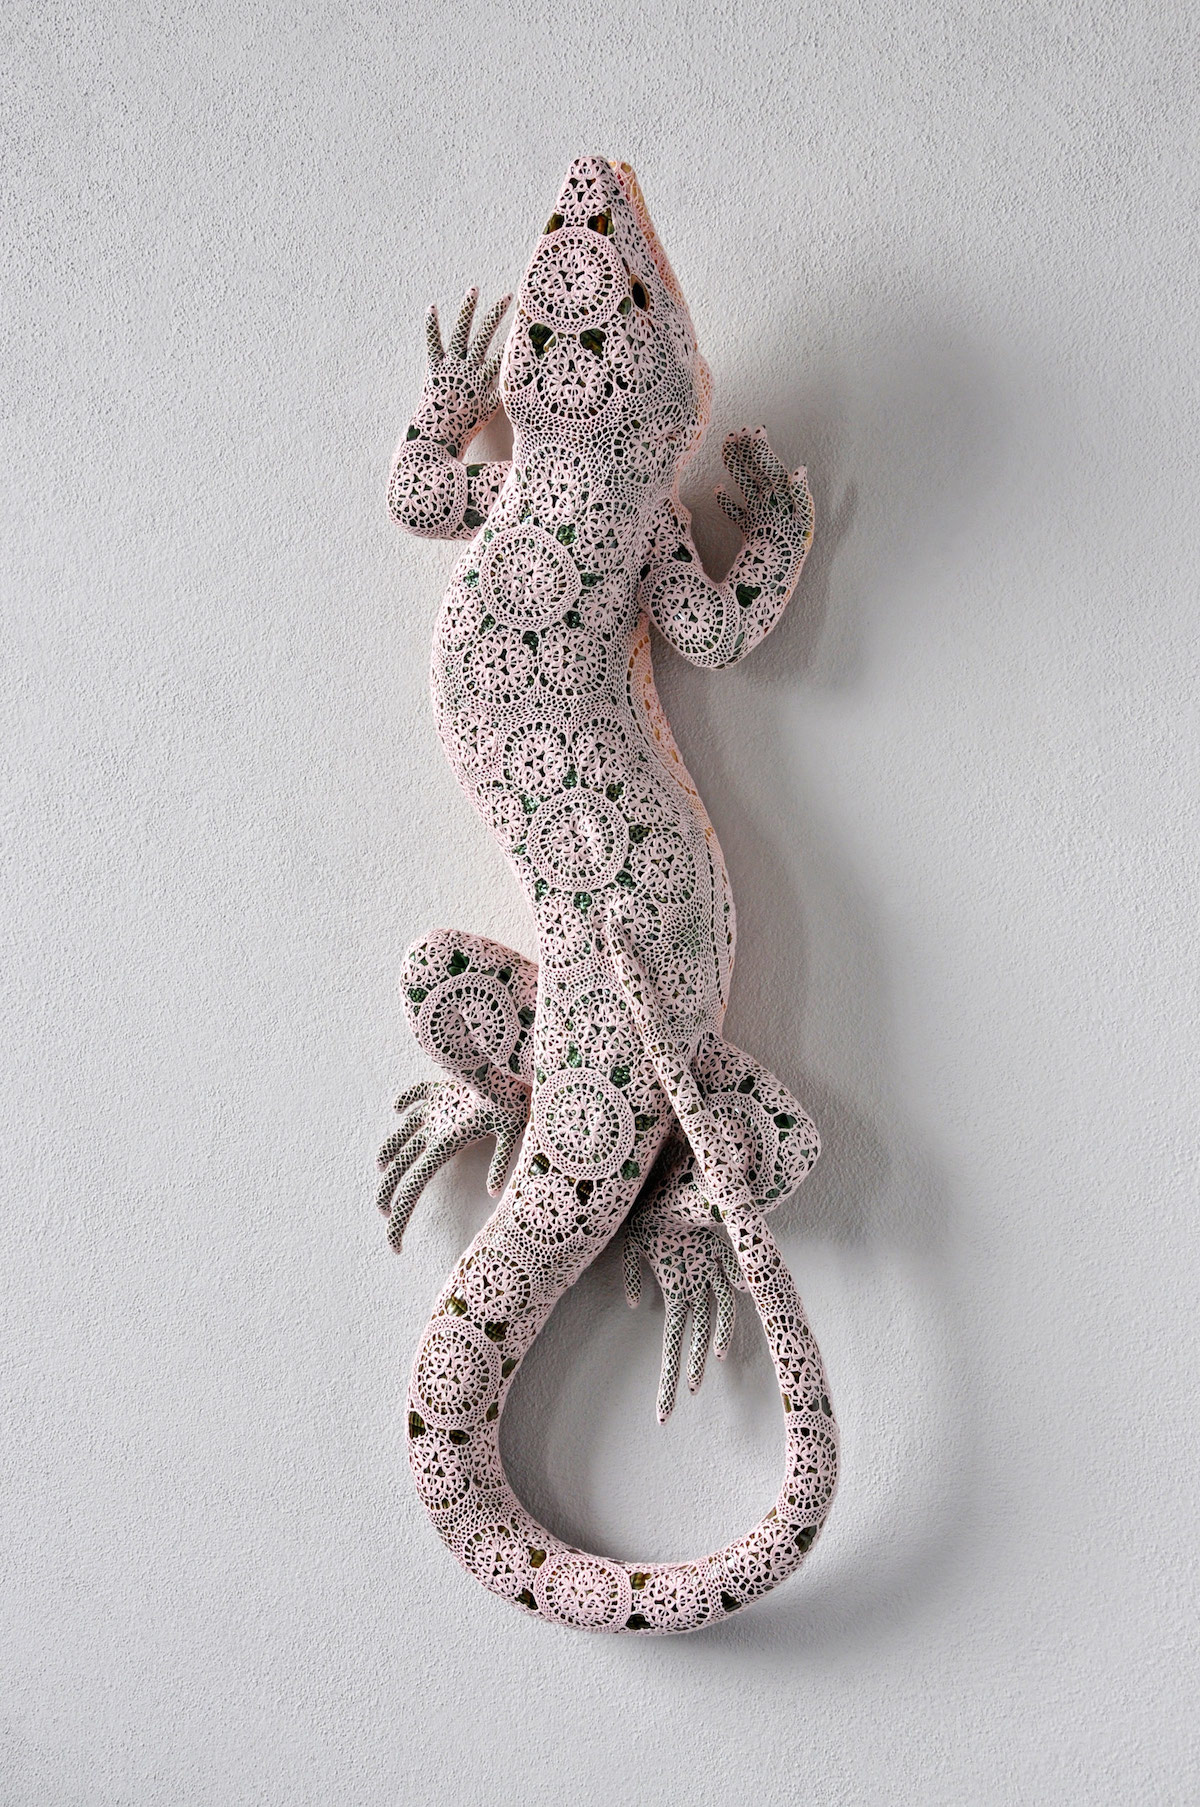 Joana Vasconcelos – Lezard sculpture dentelles Art